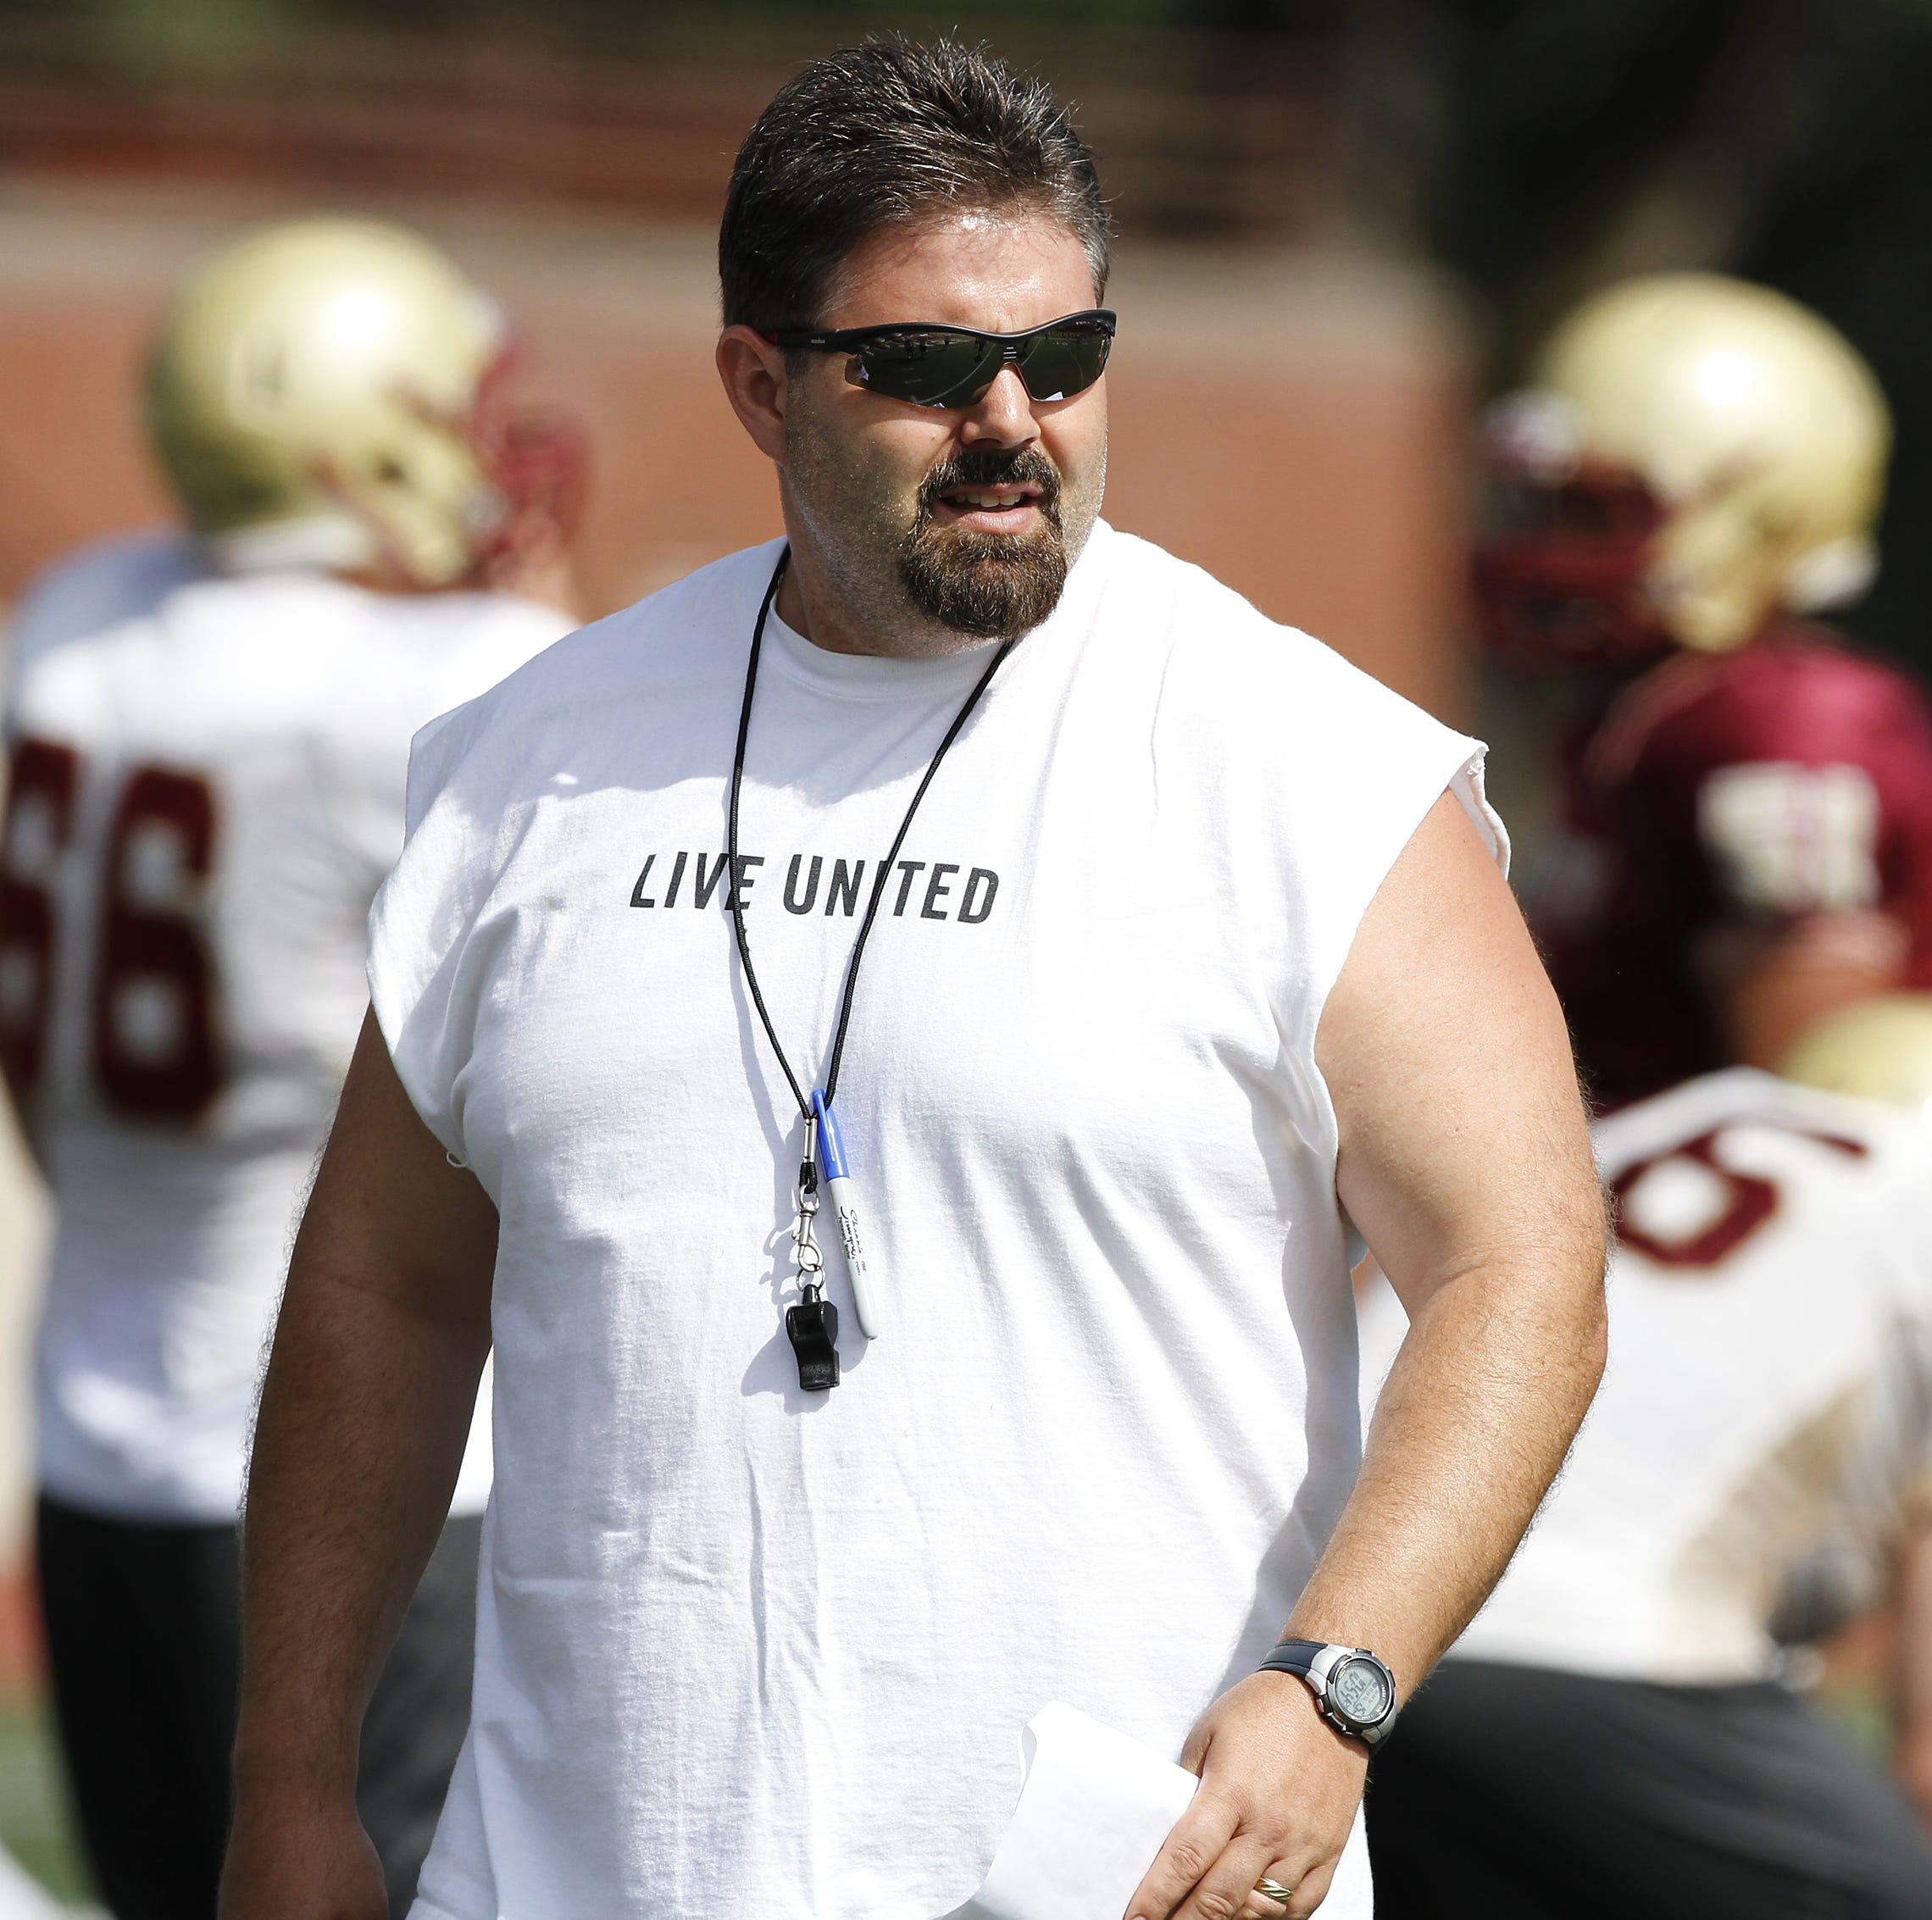 Glen Fowles out as Willamette University head football coach